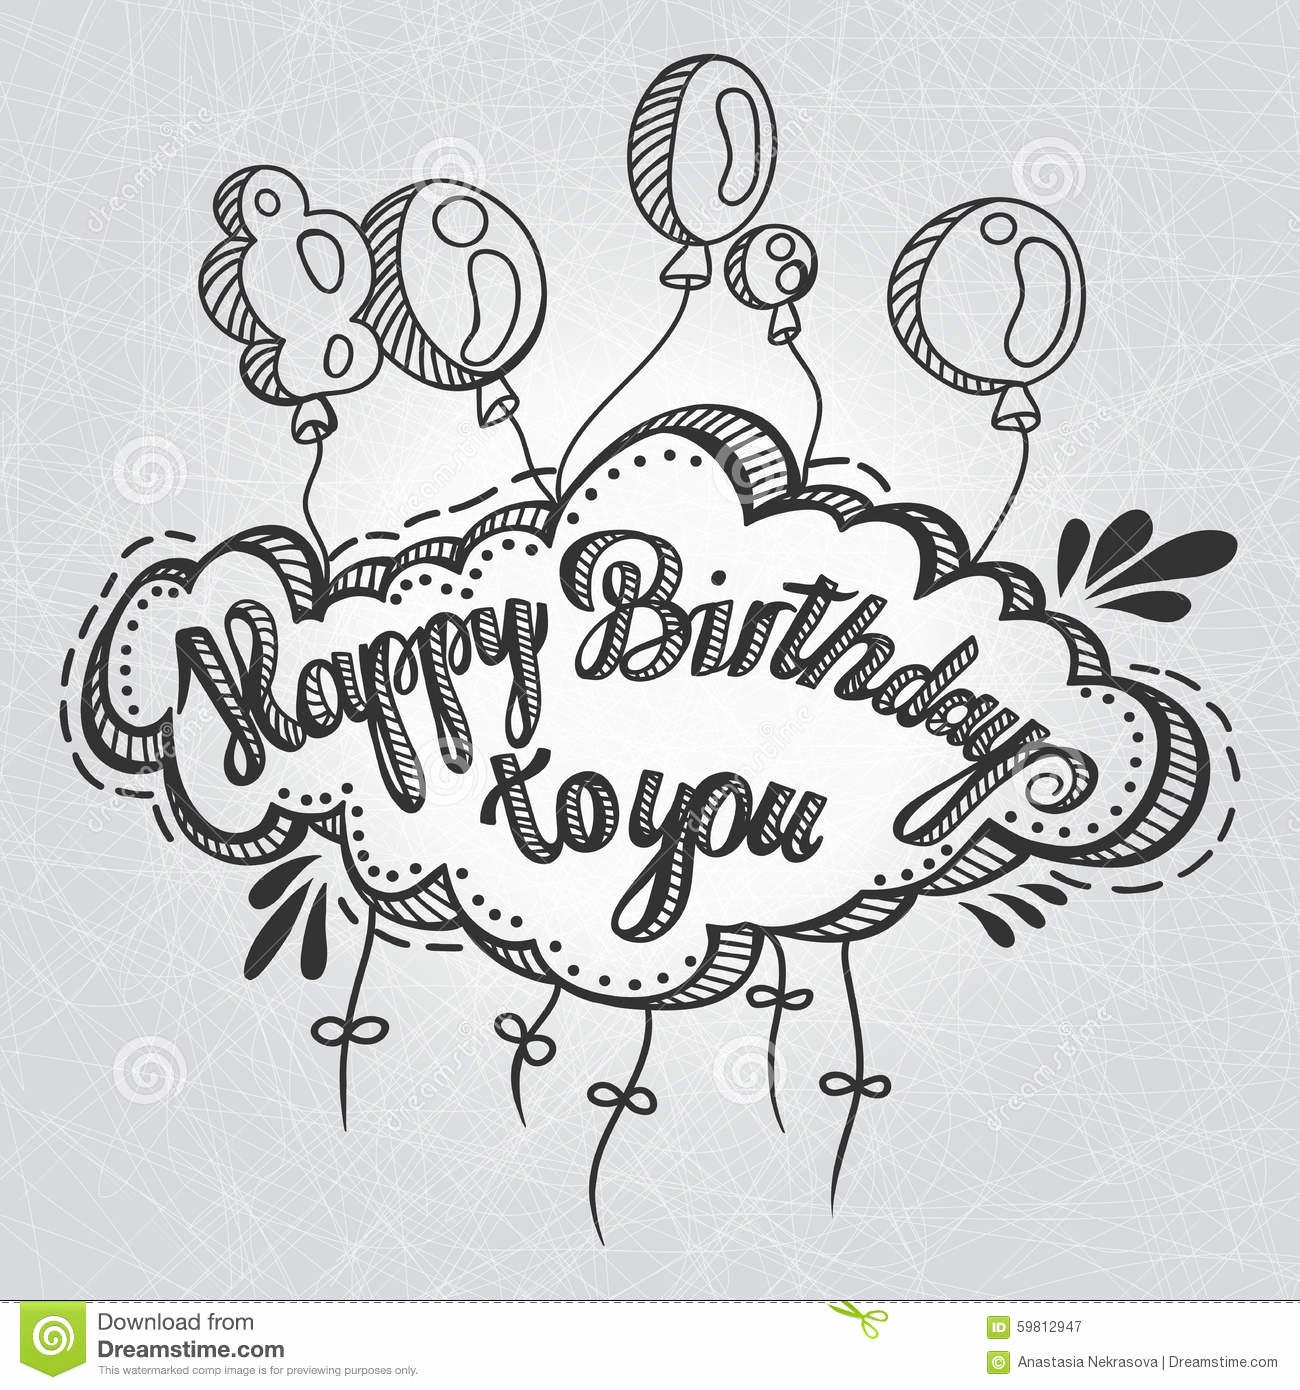 happy bday drawings ; birthday-card-drawings-inspirational-greeting-card-happy-birthday-to-you-hand-drawing-greeting-of-birthday-card-drawings